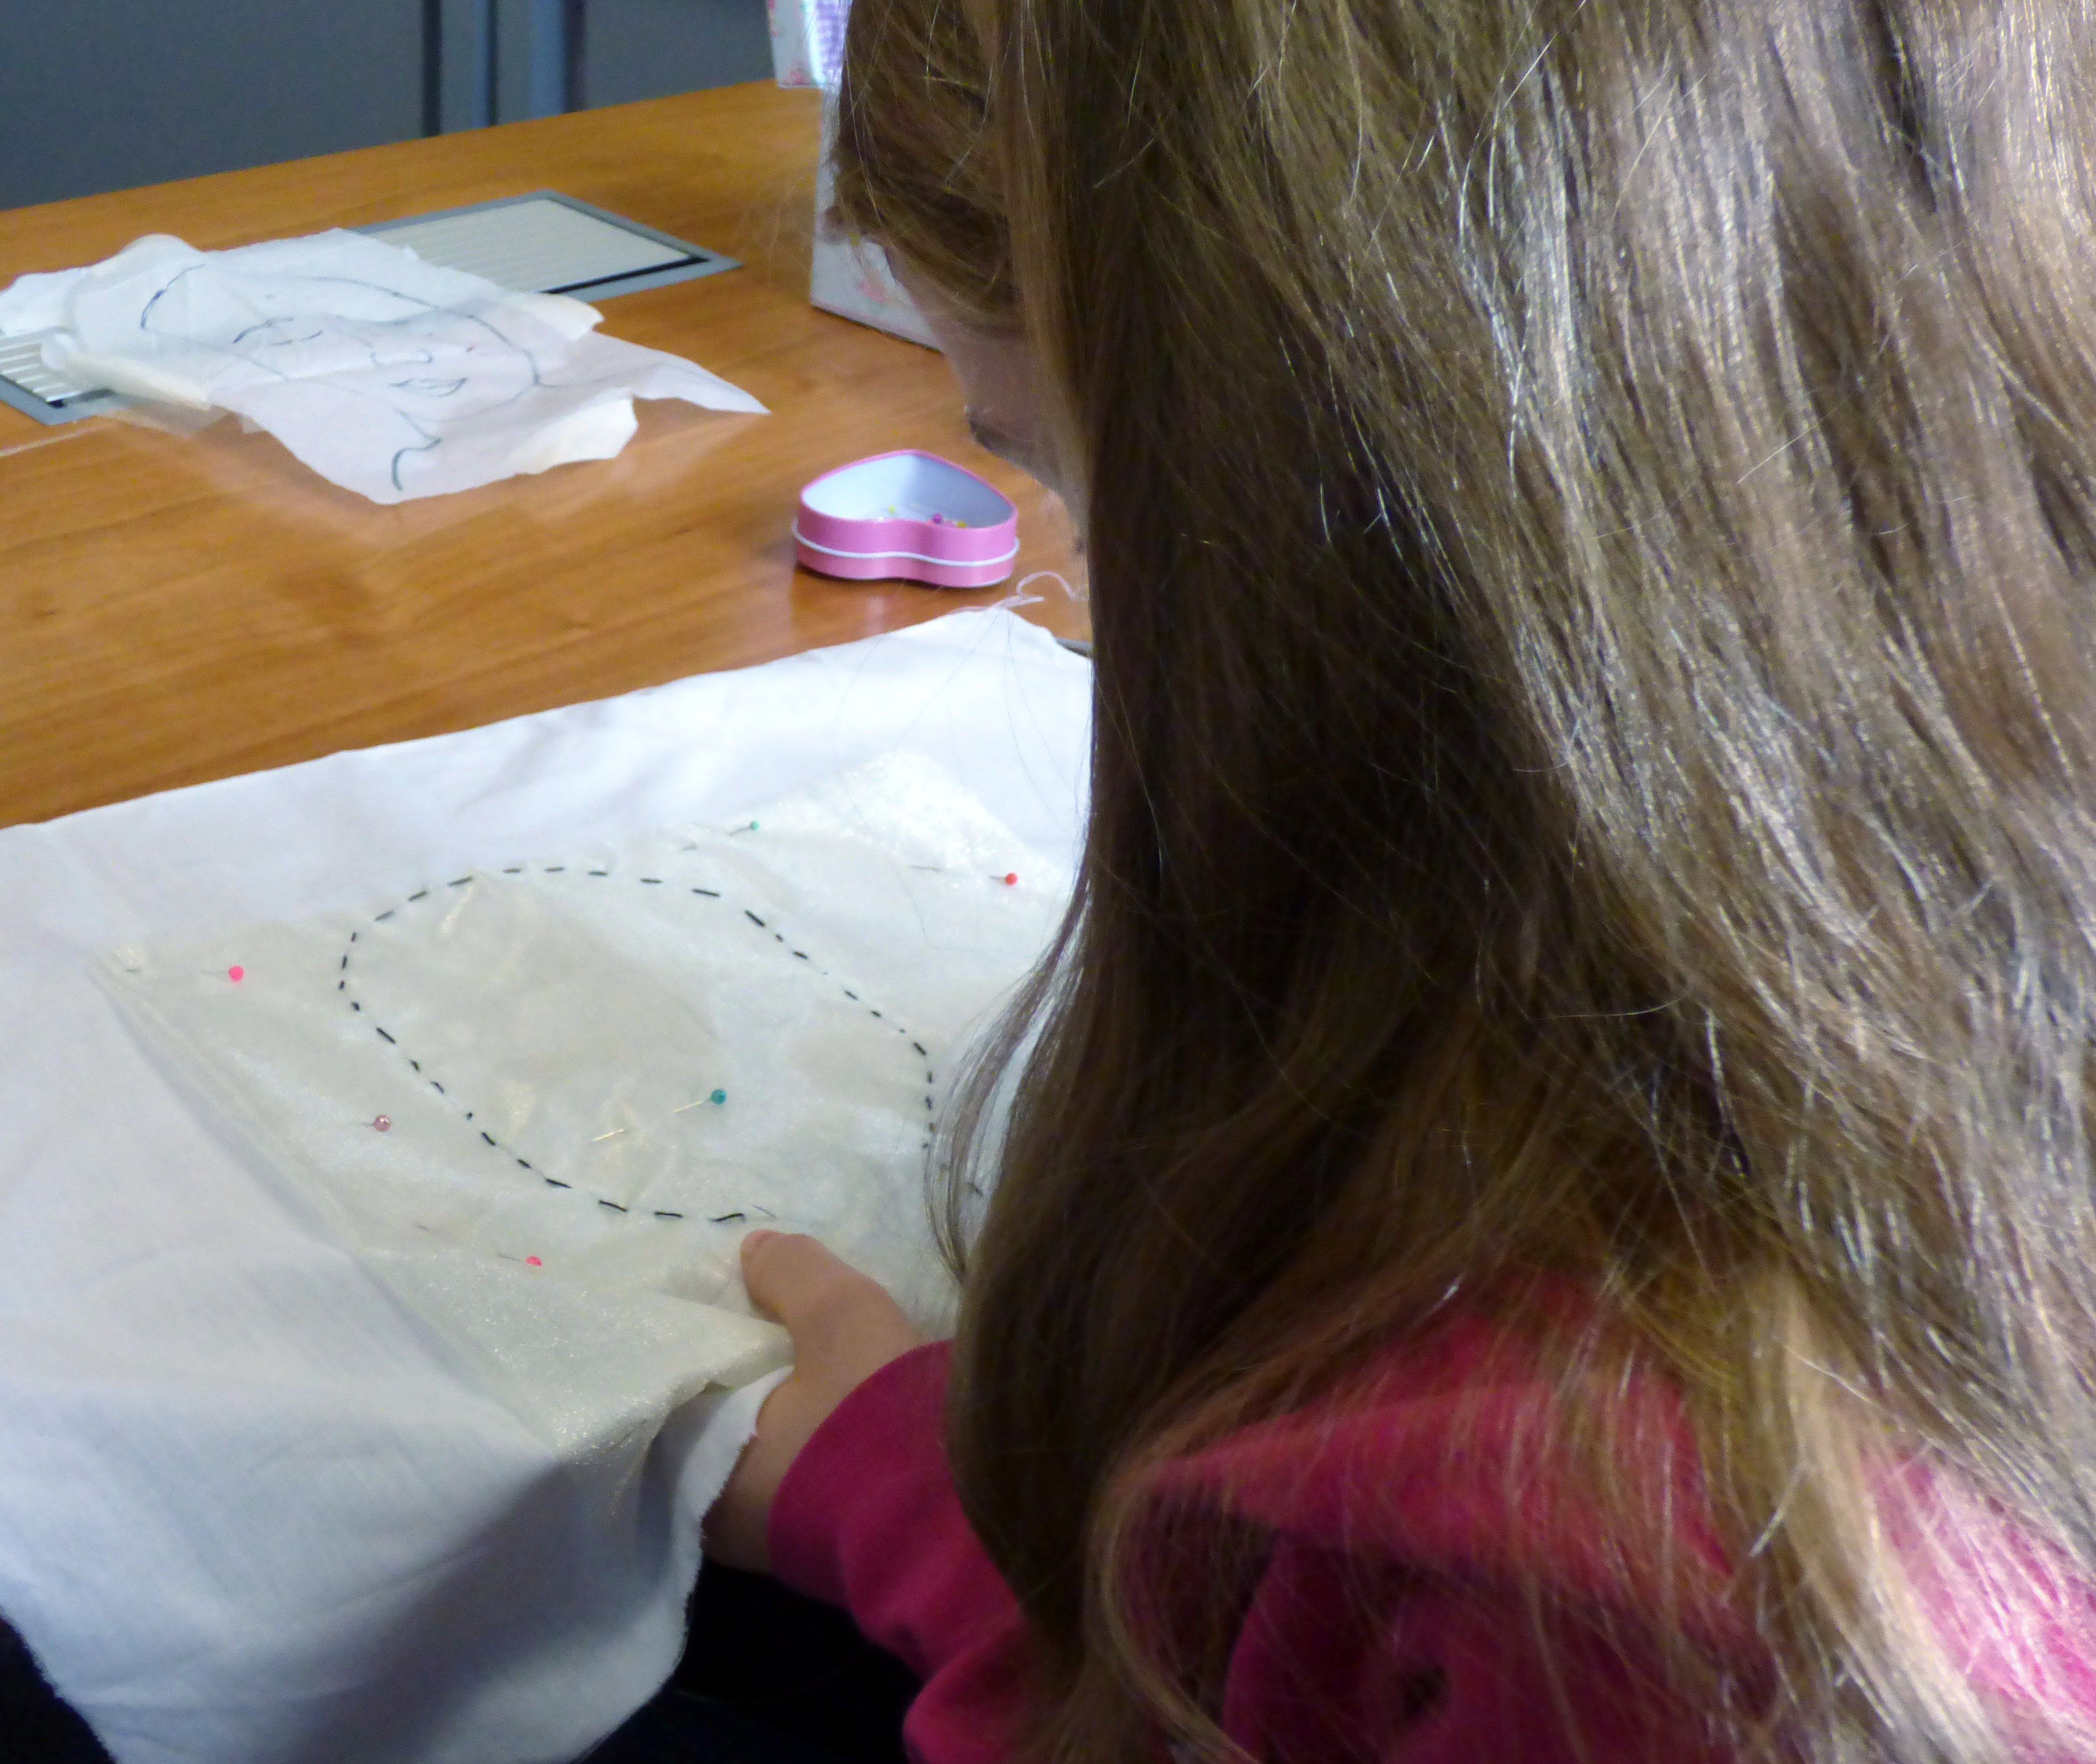 First we use running stitch to outline the face at Merseyside YE